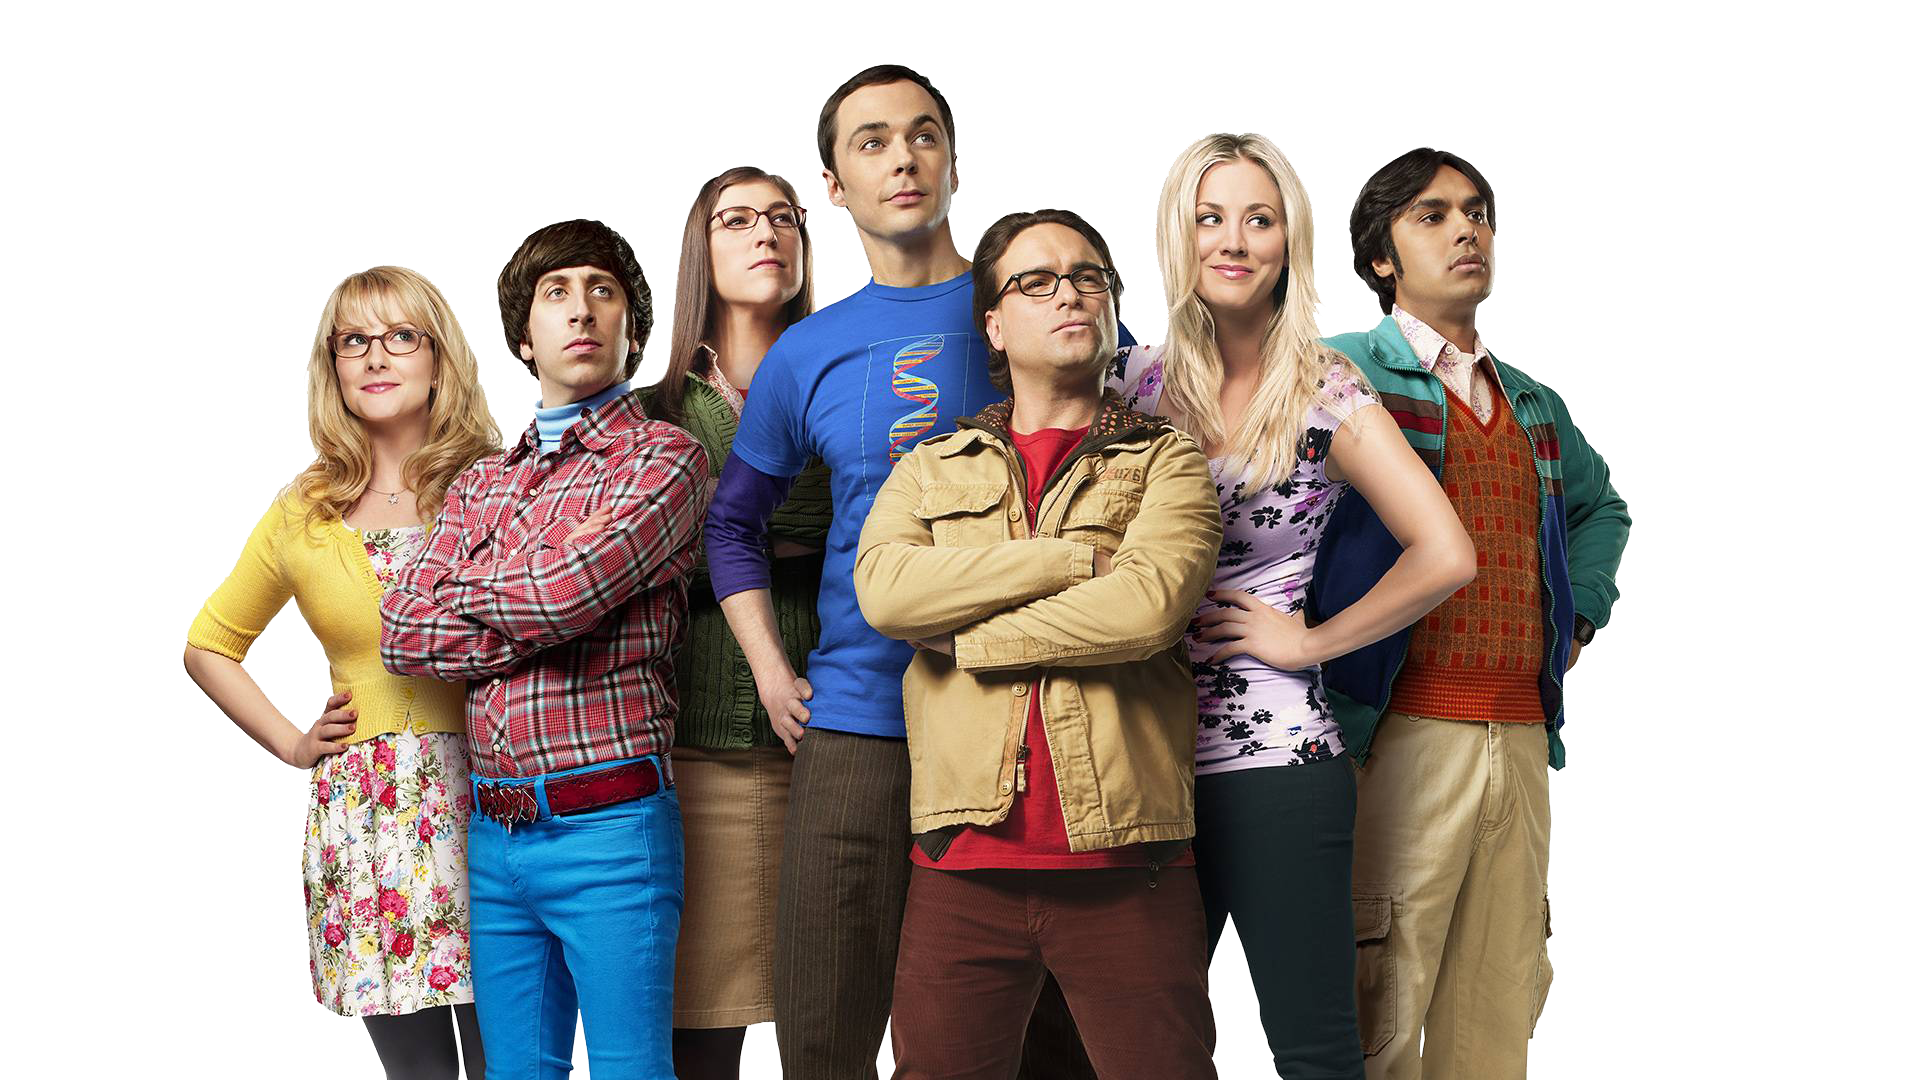 Download Free The Big Bang Theory Clipart ICON favicon.